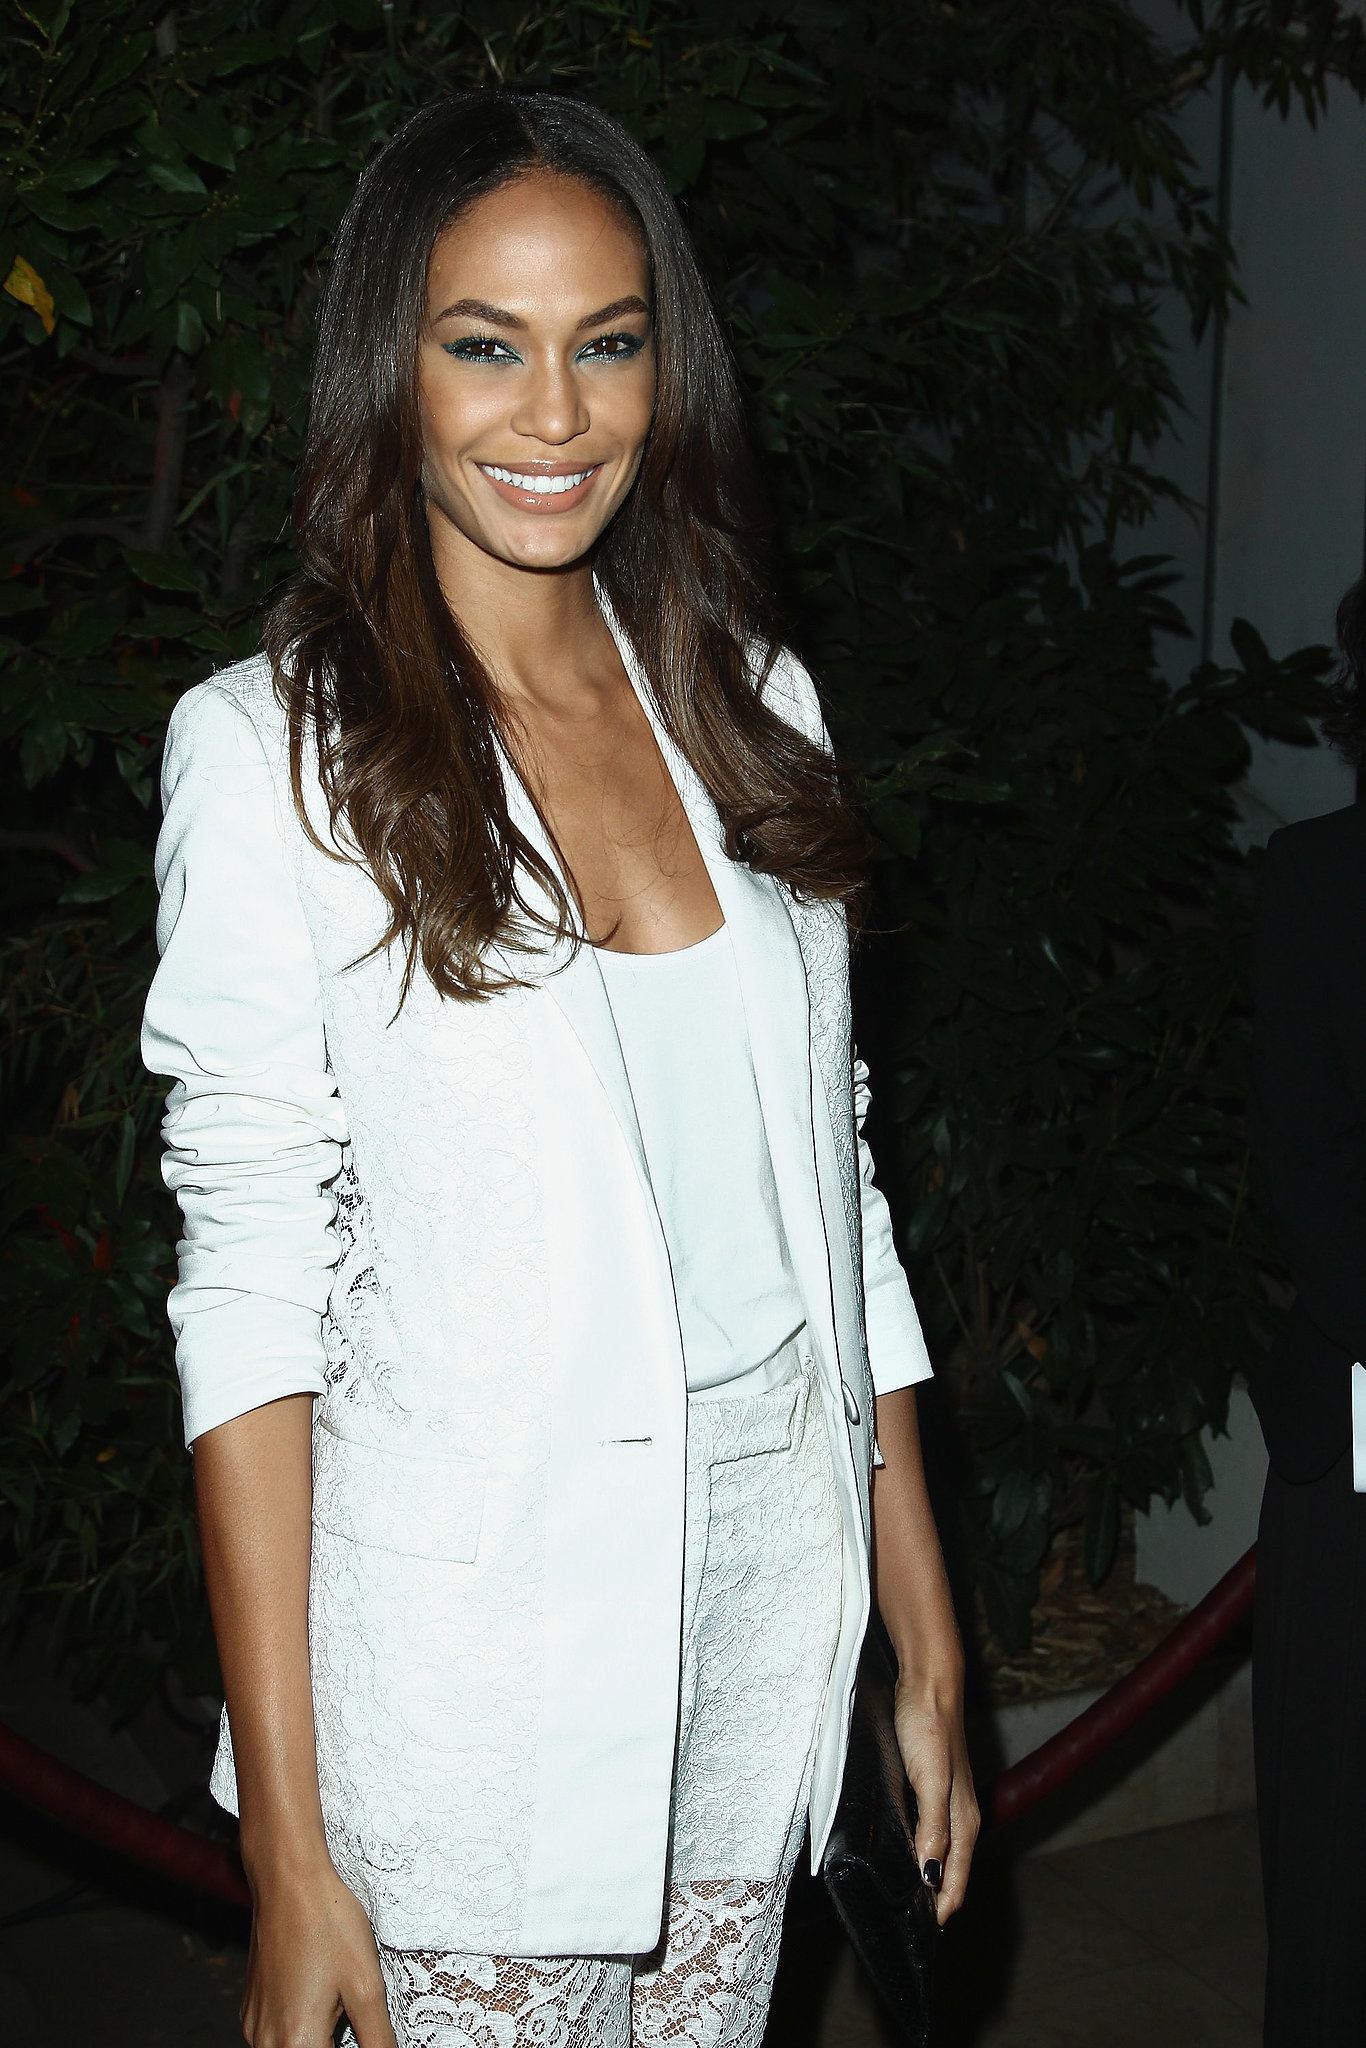 Joan Smalls at the Mademoiselle C Cocktail Party